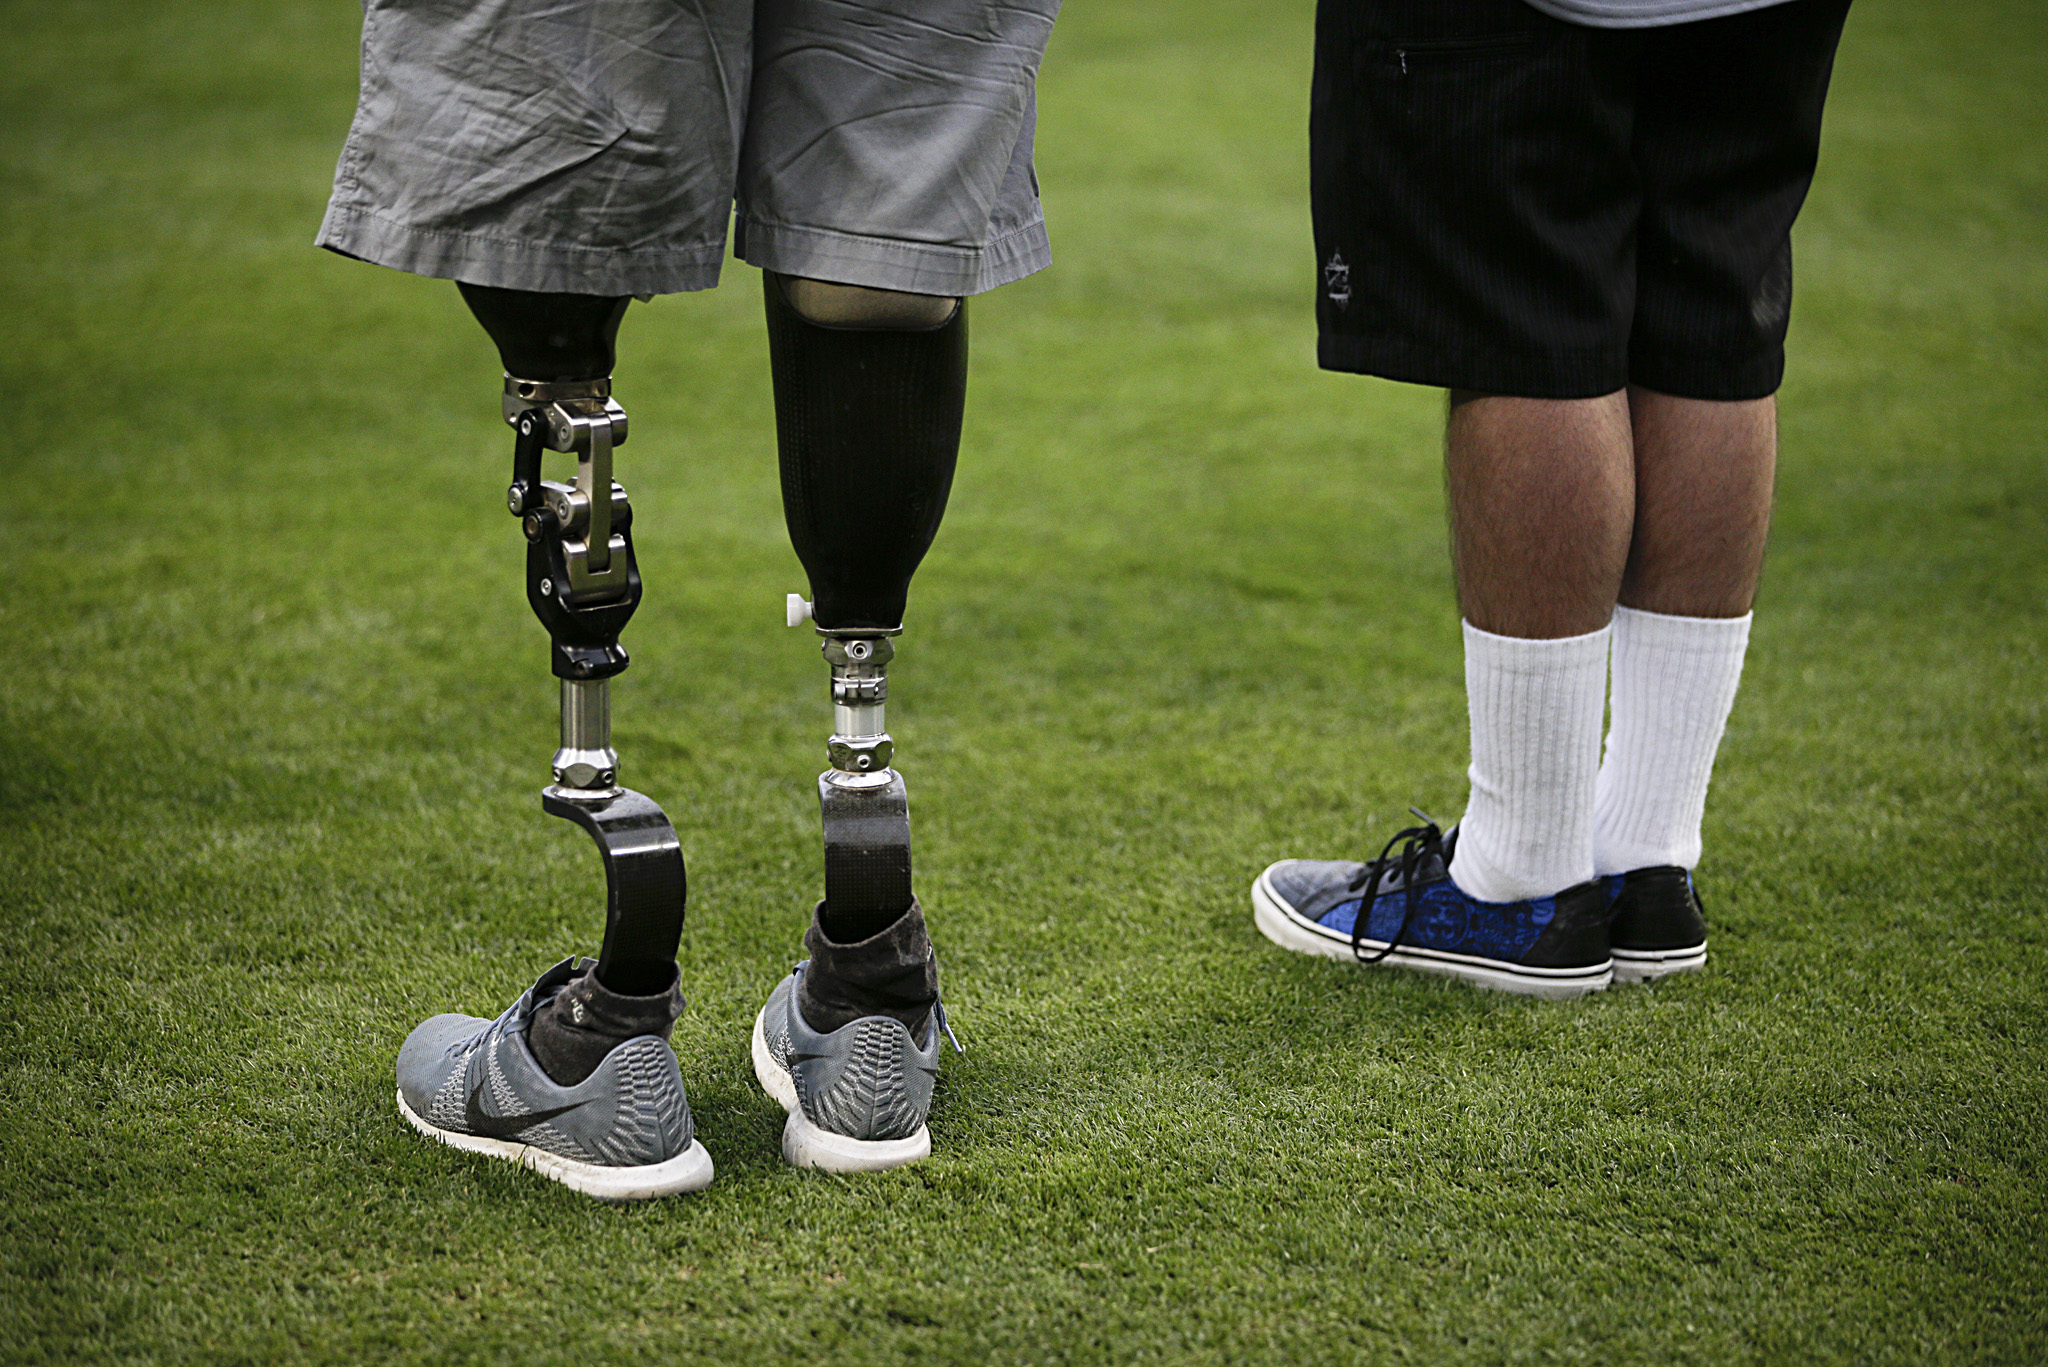 Wesley Barrientos...U.S. Army veteran Wesley Barrientos, left, who lost his legs in 2007 while serving in Iraq, listens to the national anthem before a baseball game between the Los Angeles Dodgers and the Arizona Diamondbacks, Tuesday, June 9, 2015, in Los Angeles. (AP Photo/Jae C. Hong)